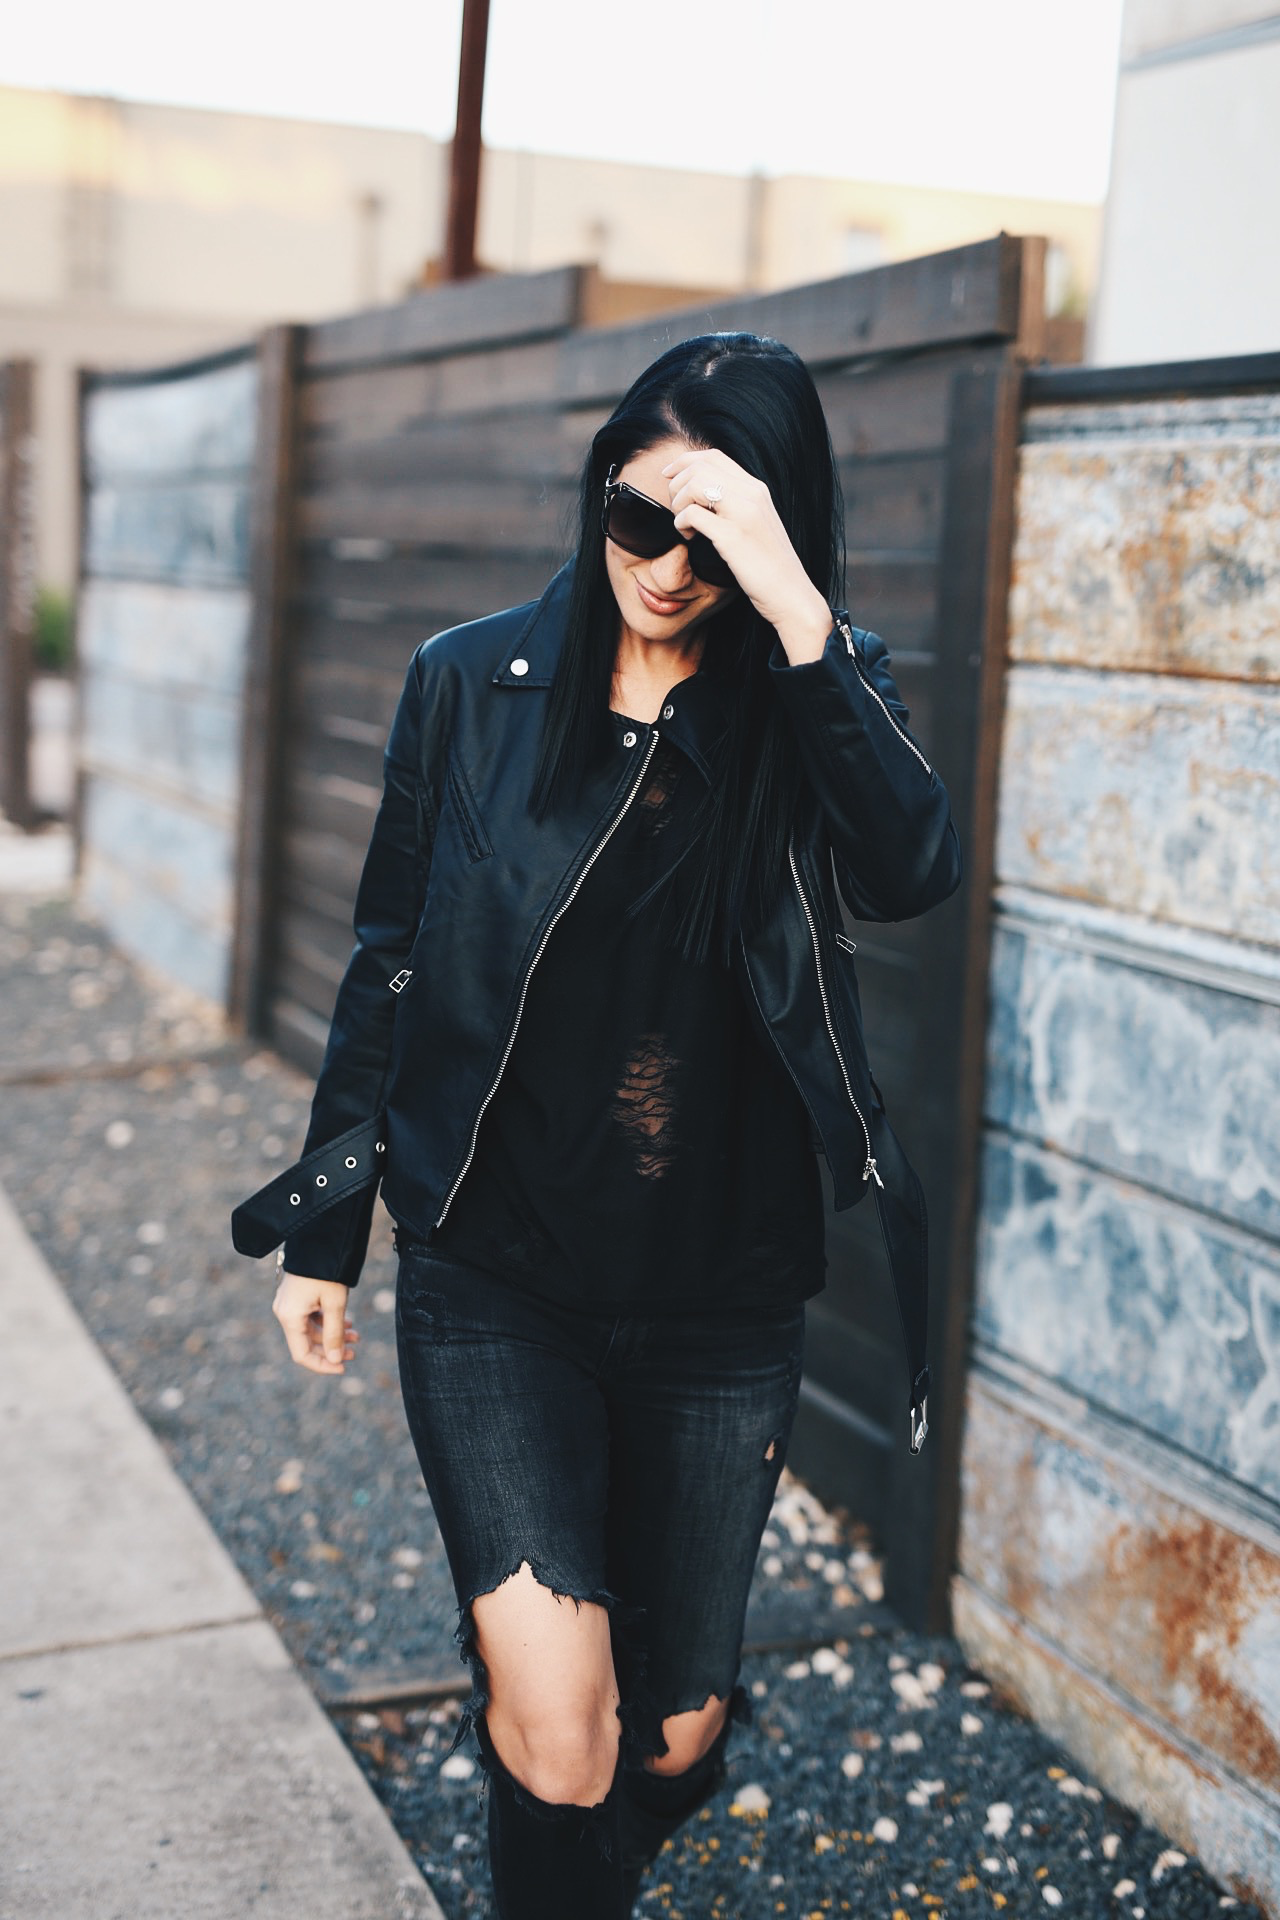 Black Faux Leather Jacket | how to style a leather jacket | how to wear a leather jacket | leather jacket style tips | fall jackets | jackets for fall and winter | fall fashion tips | fall outfit ideas | fall style tips | what to wear for fall | cool weather fashion | fashion for fall | style tips for fall | outfit ideas for fall || Dressed to Kill  #leatherjacket #blackleather #blackjacket